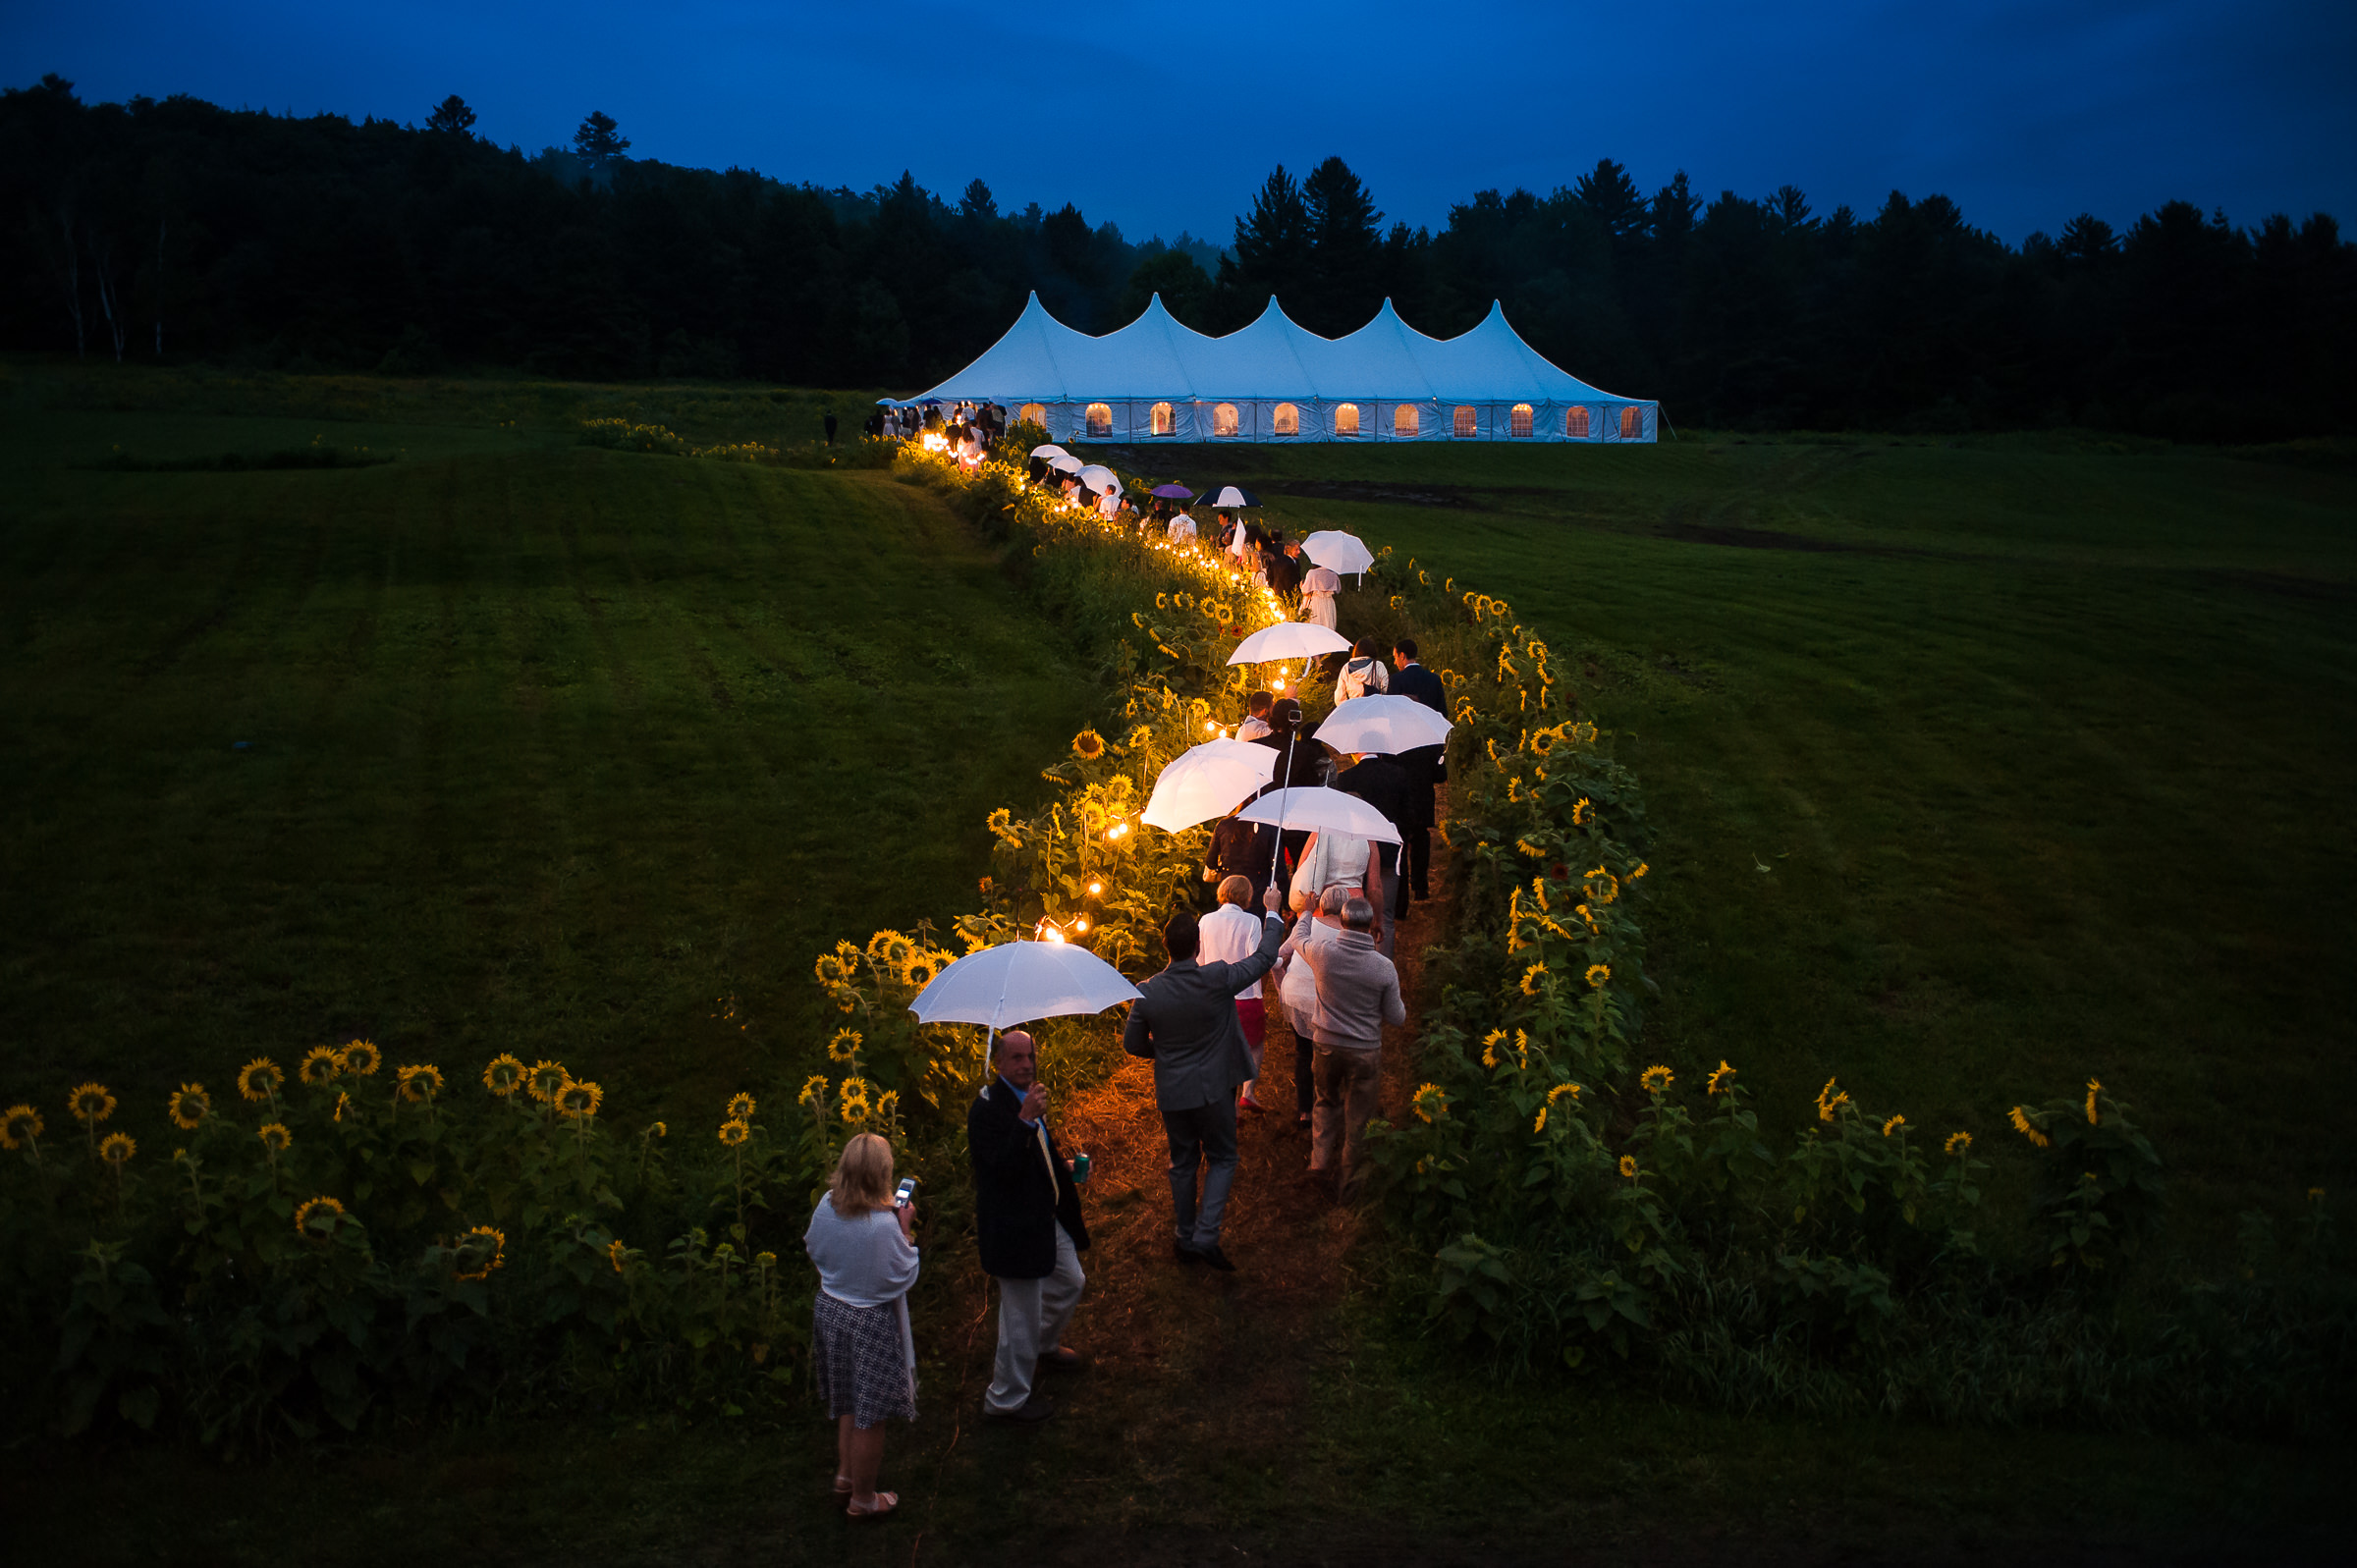 wedding-guests-walking-to-tent-with-white-umbrellas-at-twilight-photo-by-hannah-photography